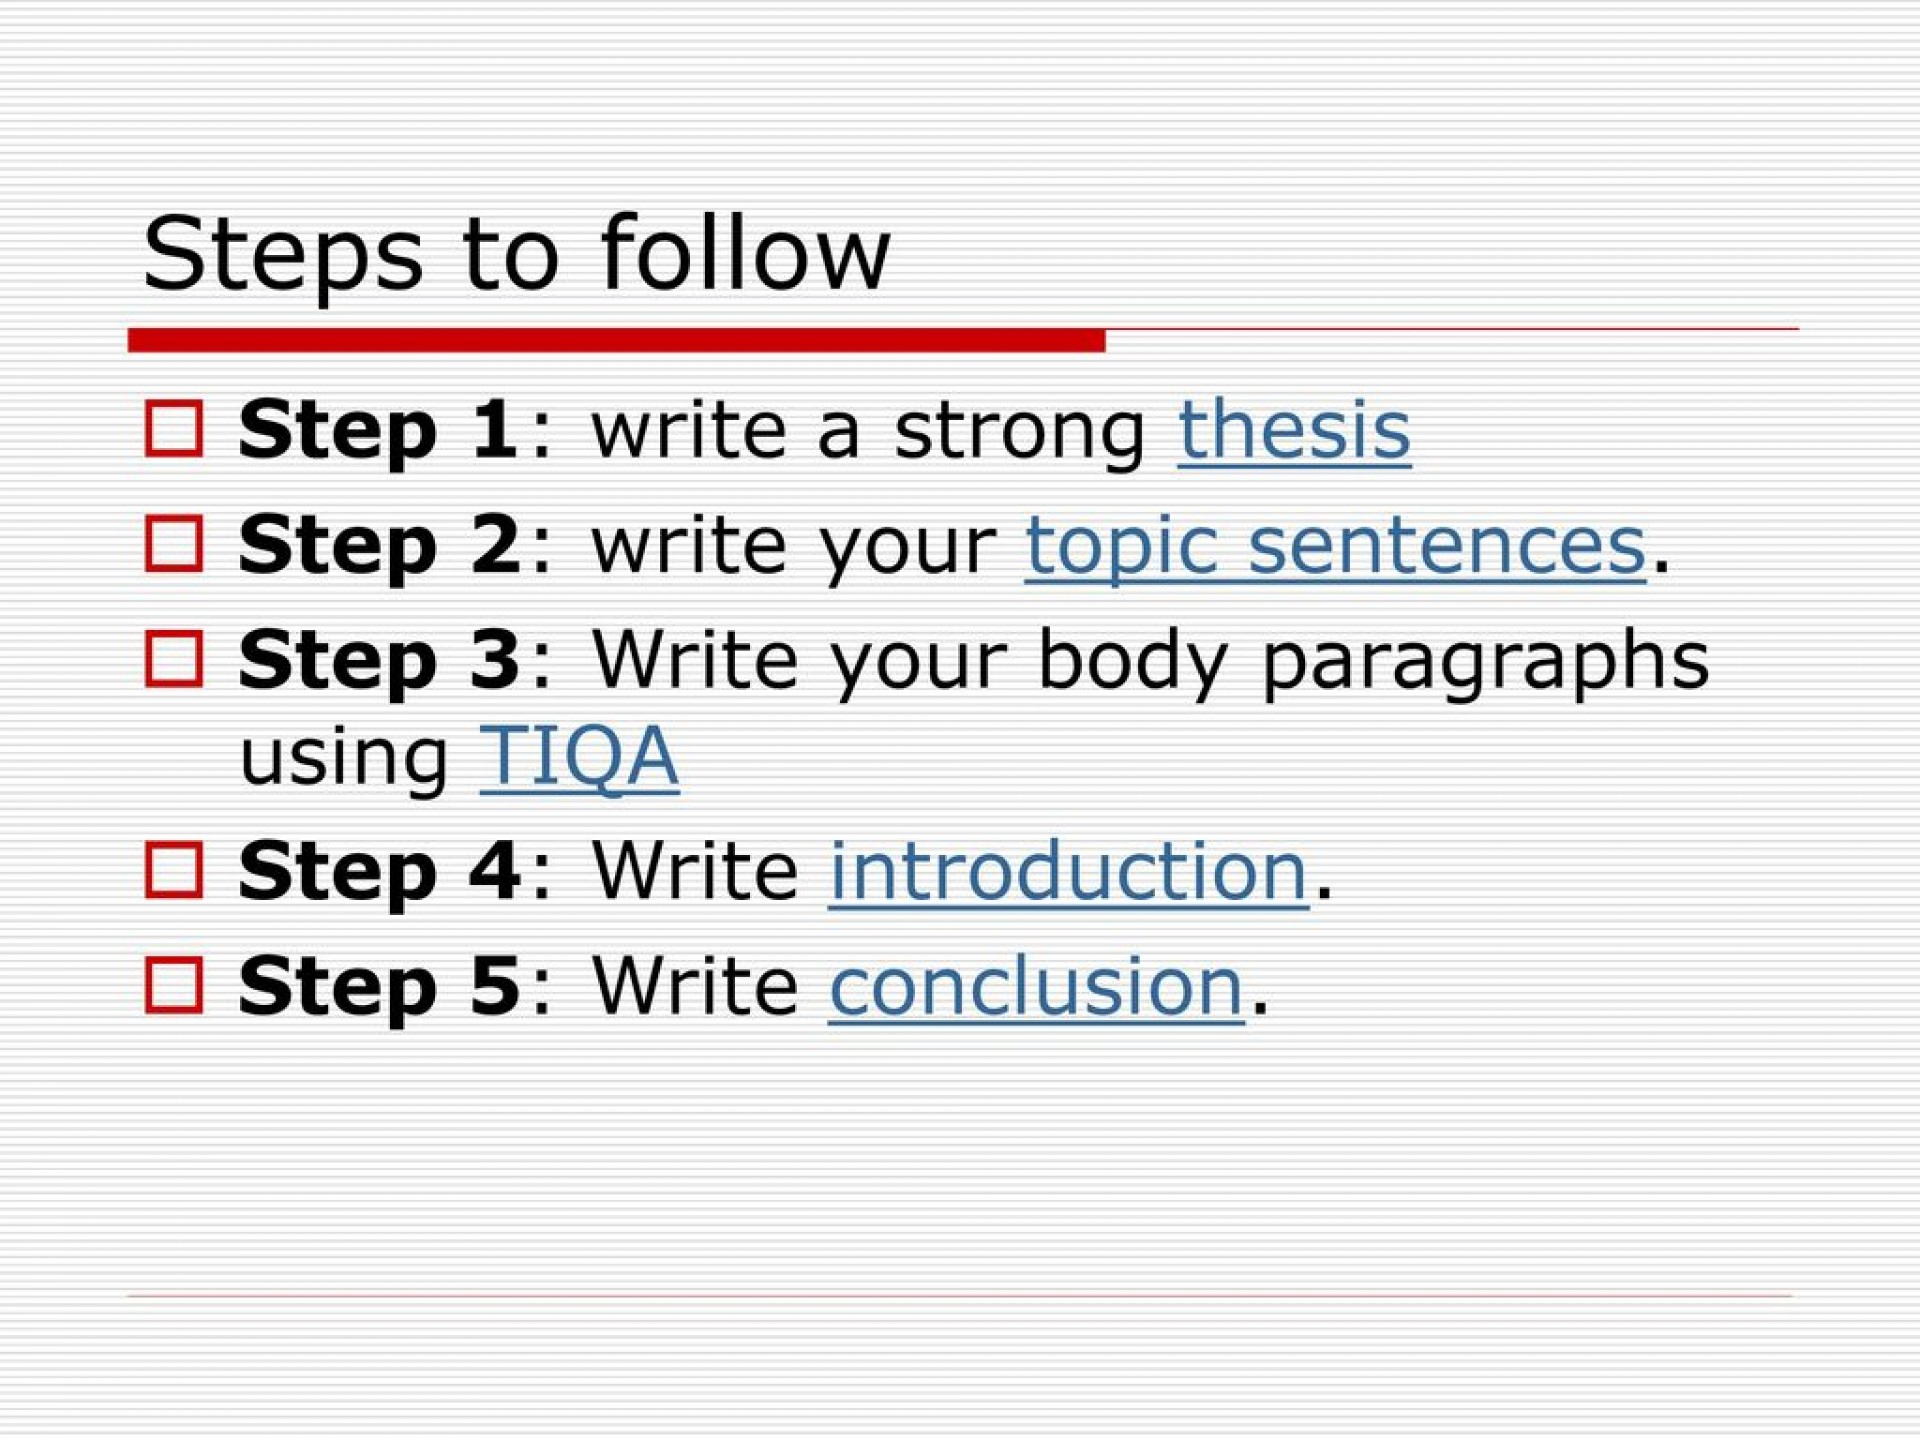 005 Steps To Writing An Argumentative Essay Term Paper Which Of The Following Best States On Flow Chart Shows Some Second Step In Brainly Marvelous What Is Prewriting Process For Easy Write 1920